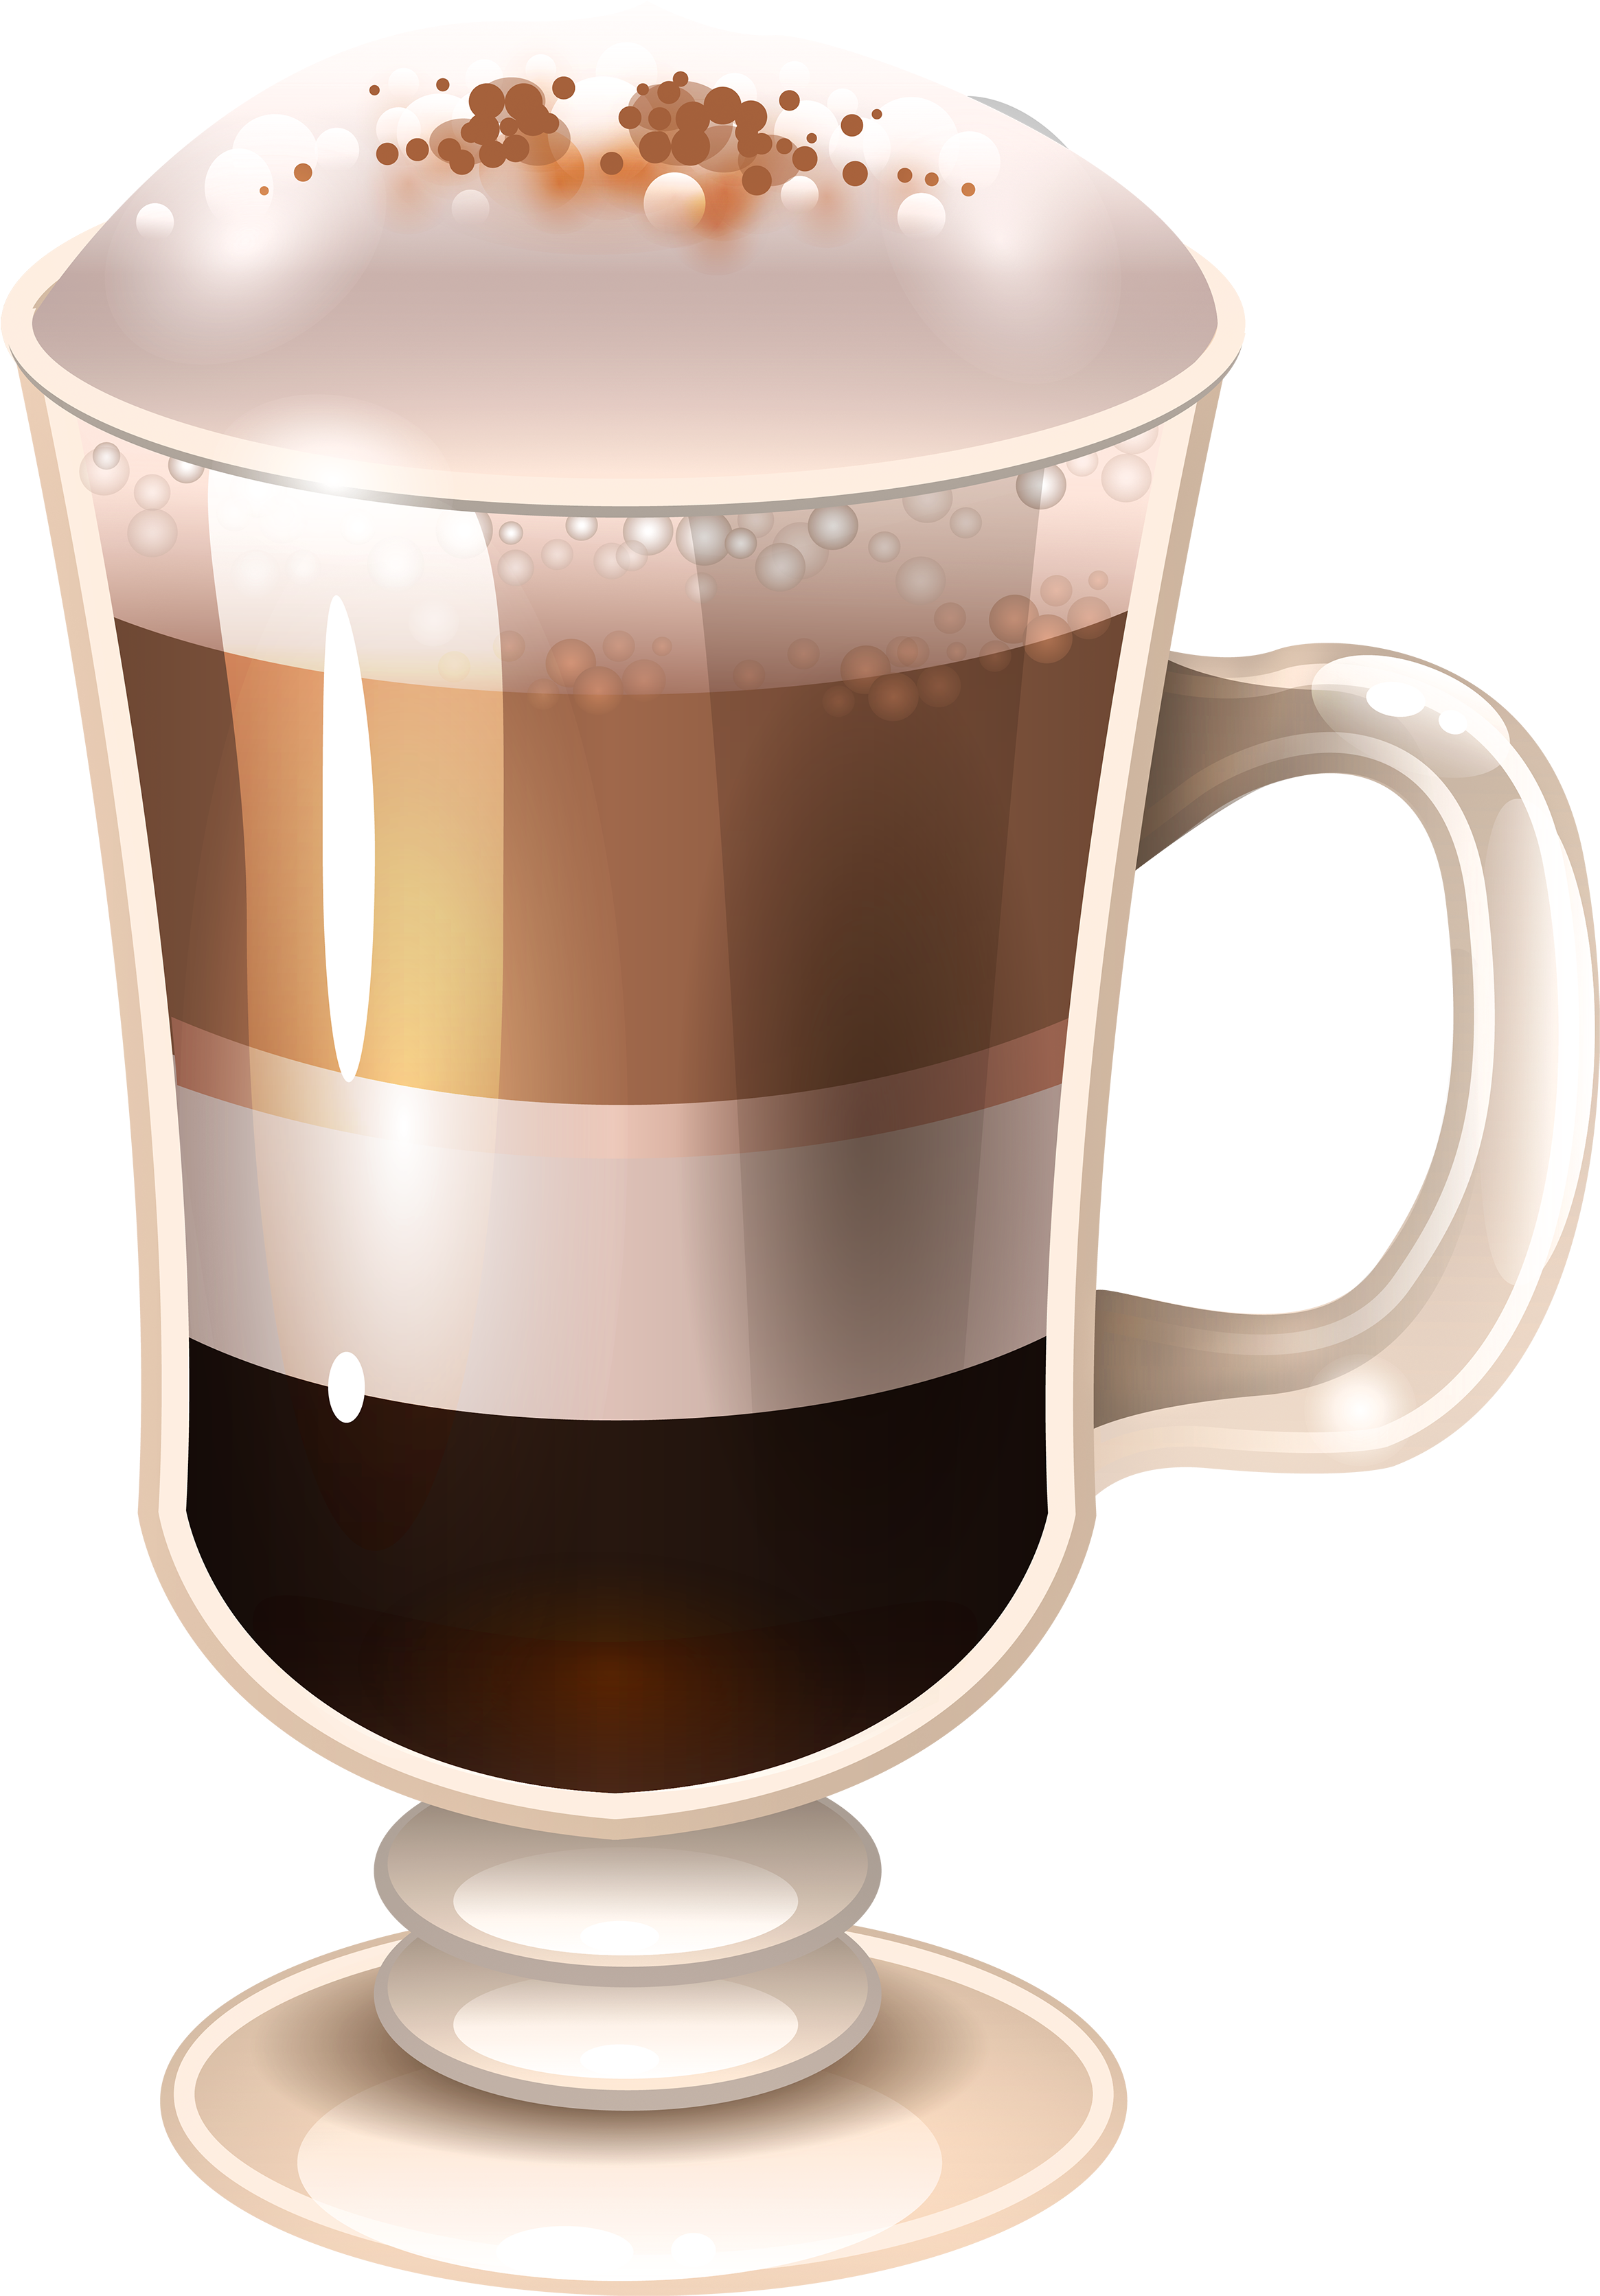 Mocha clipart png freeuse stock Download Coffee Drink Png Clipart Image - Mocha Clipart PNG ... png freeuse stock